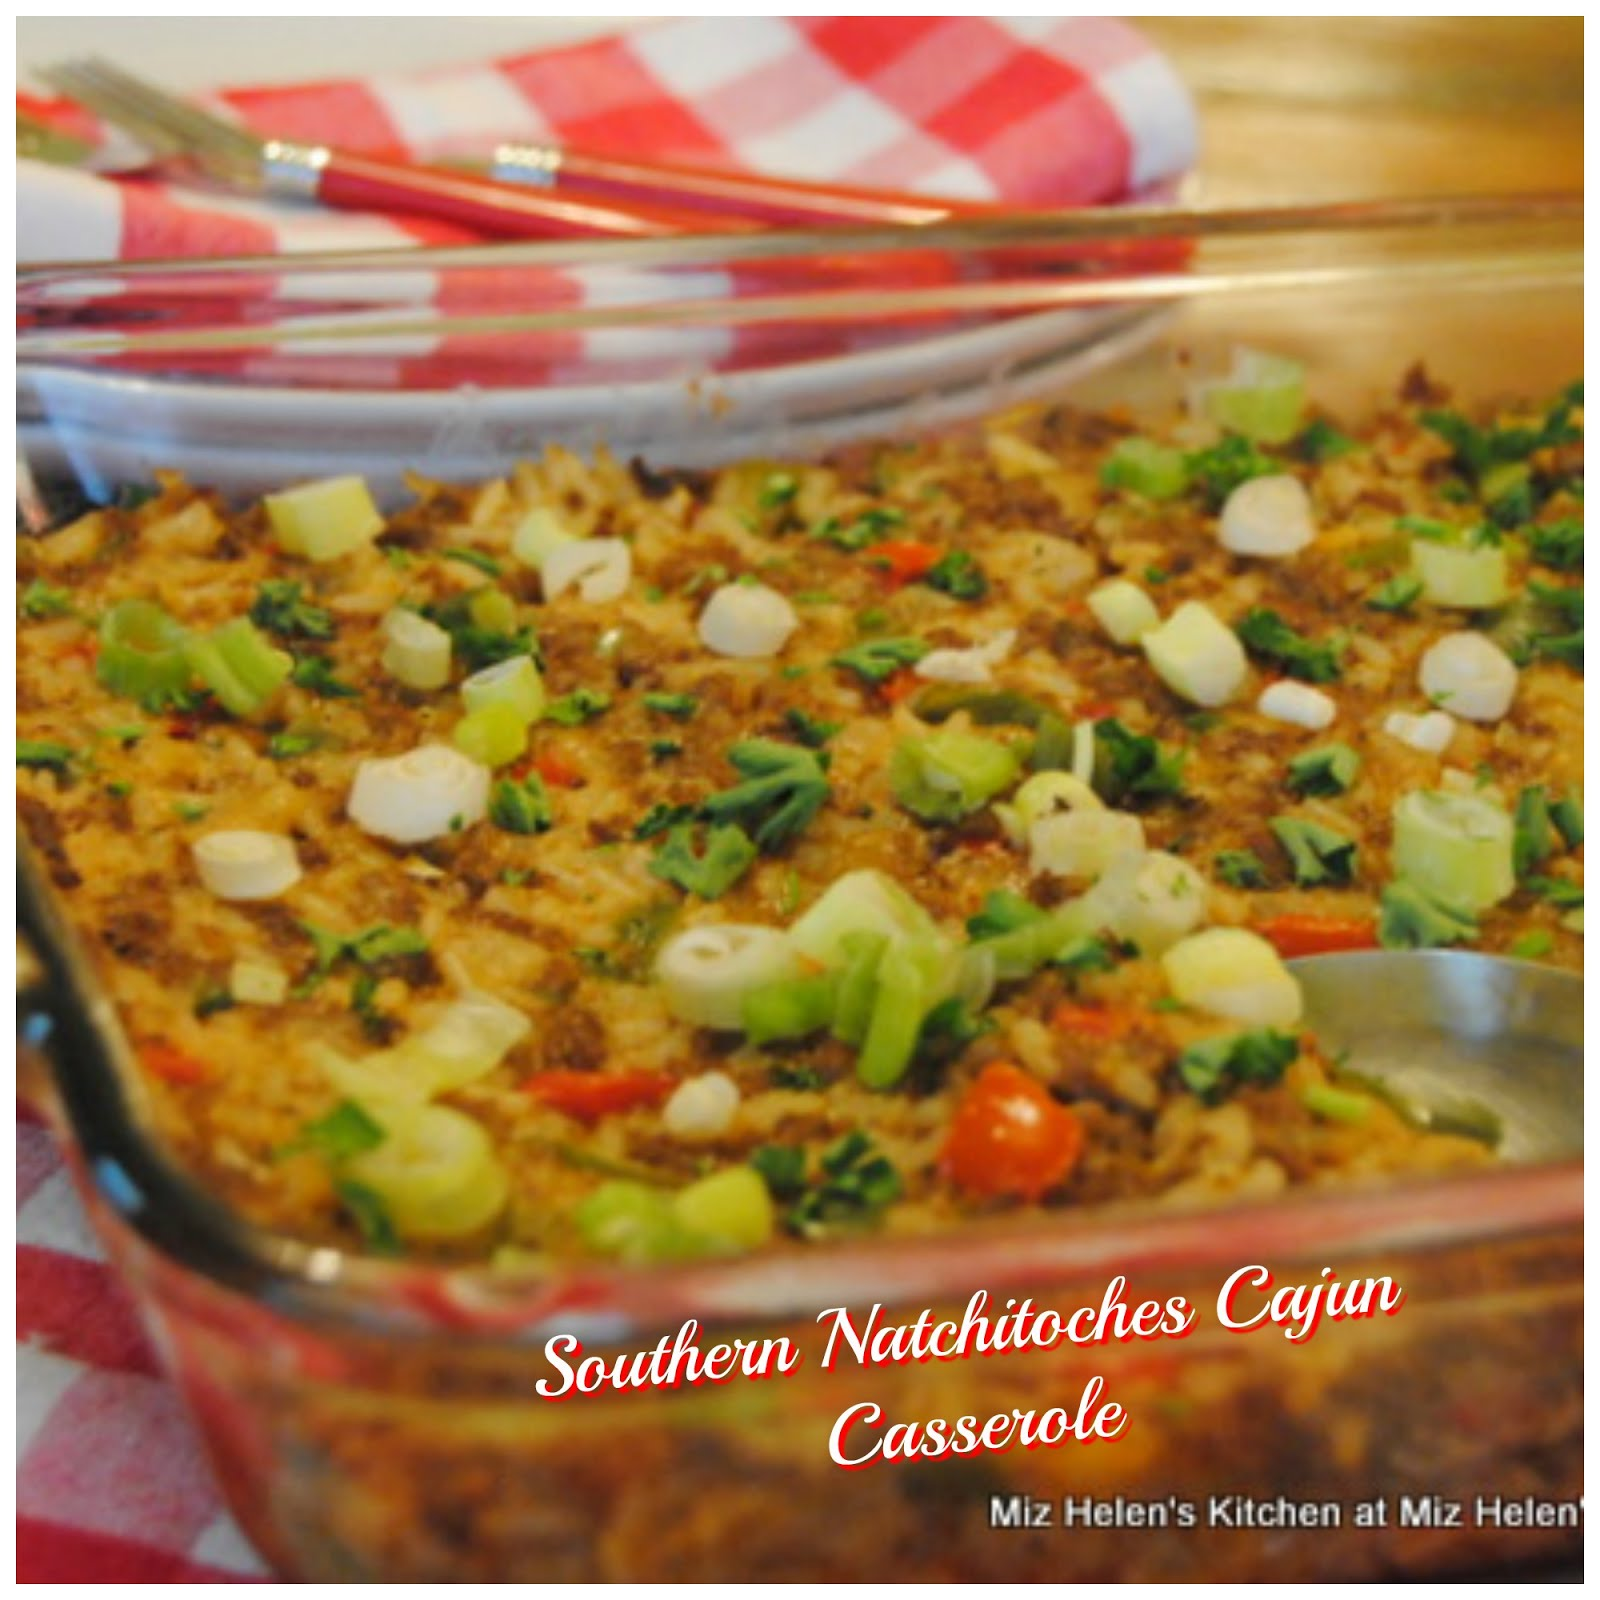 Southern Natchitoches Cajun Casserole